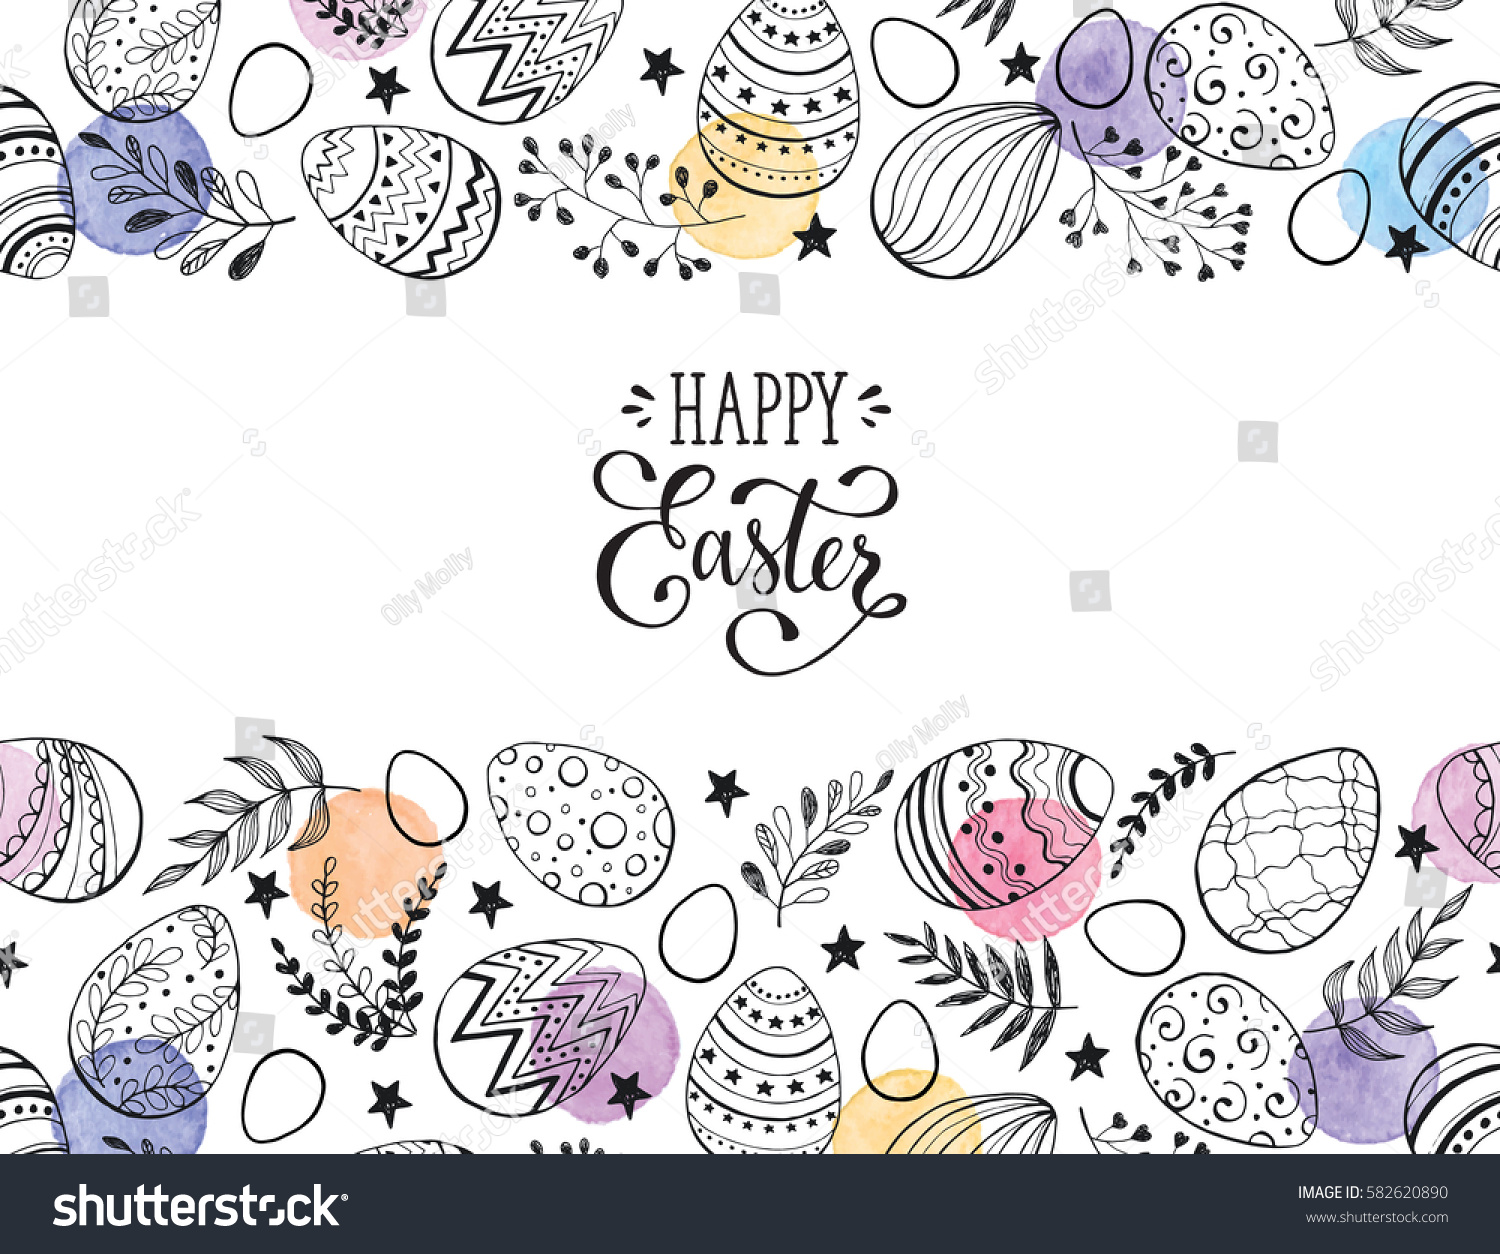 Easter eggs composition hand drawn black on white background. Decorative horizontal stripe from eggs with  leaves and watercolor dots. #582620890